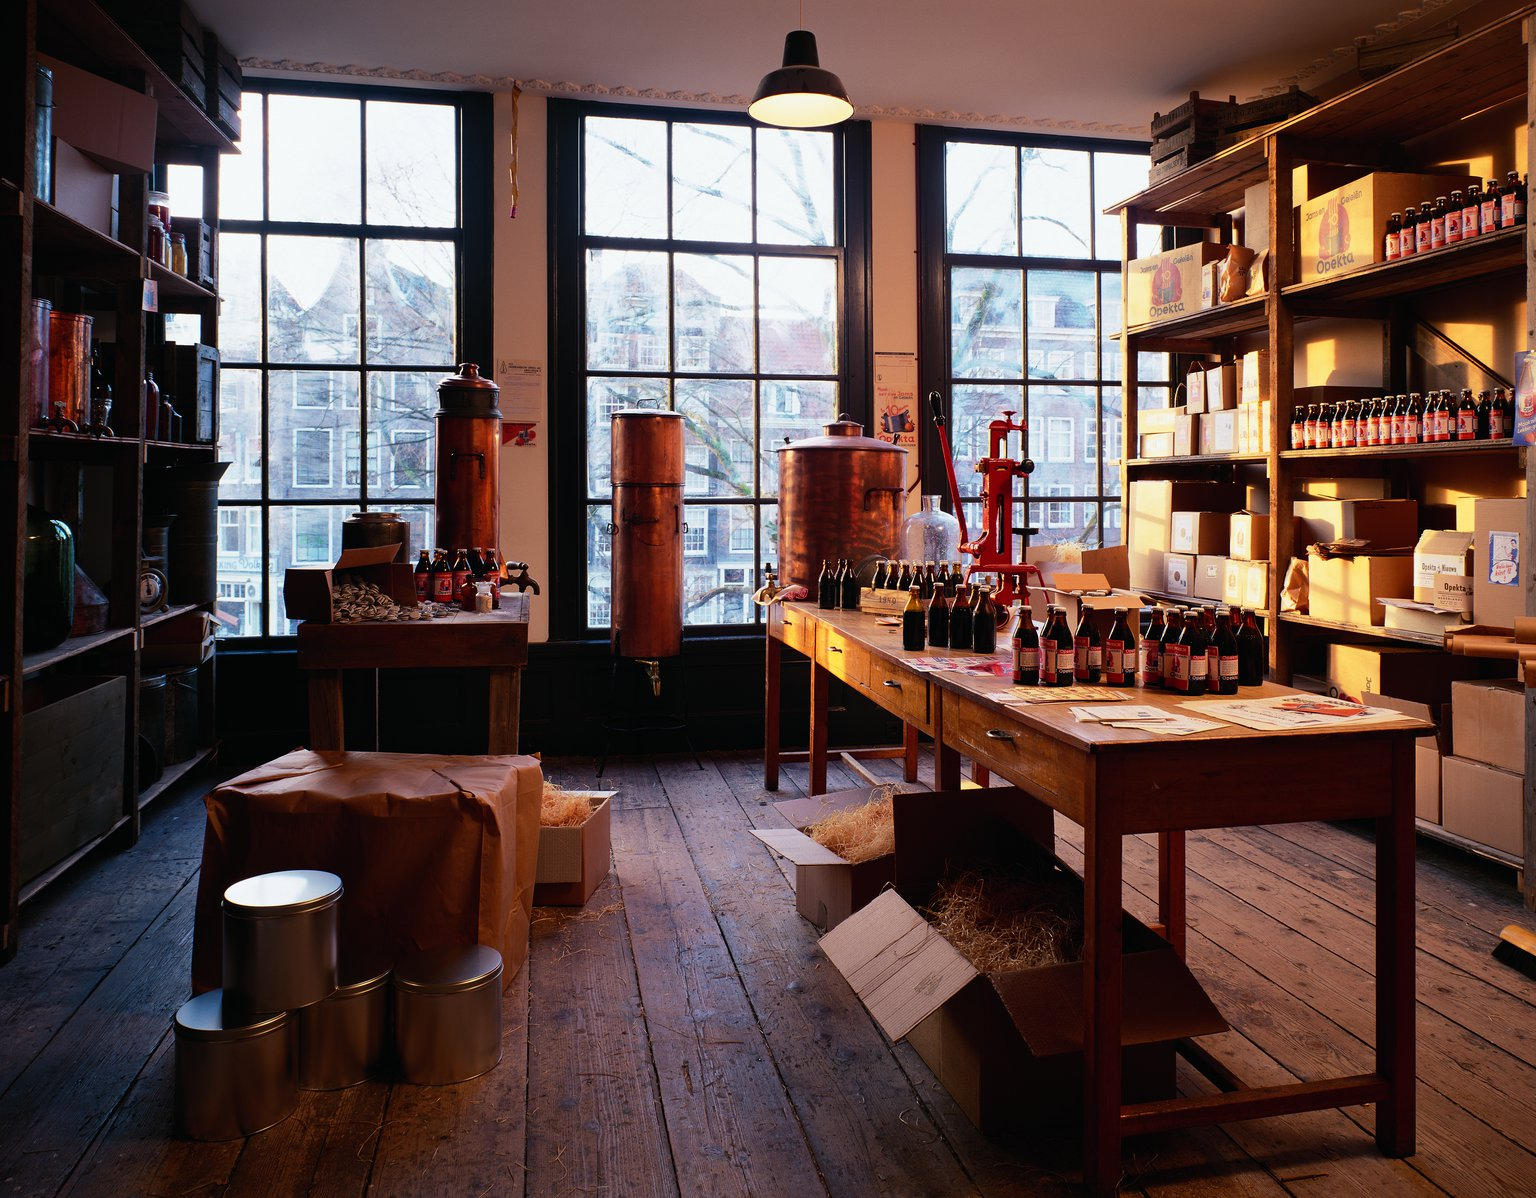 The front storeroom on the second floor of the main house, reconstruction (1999).